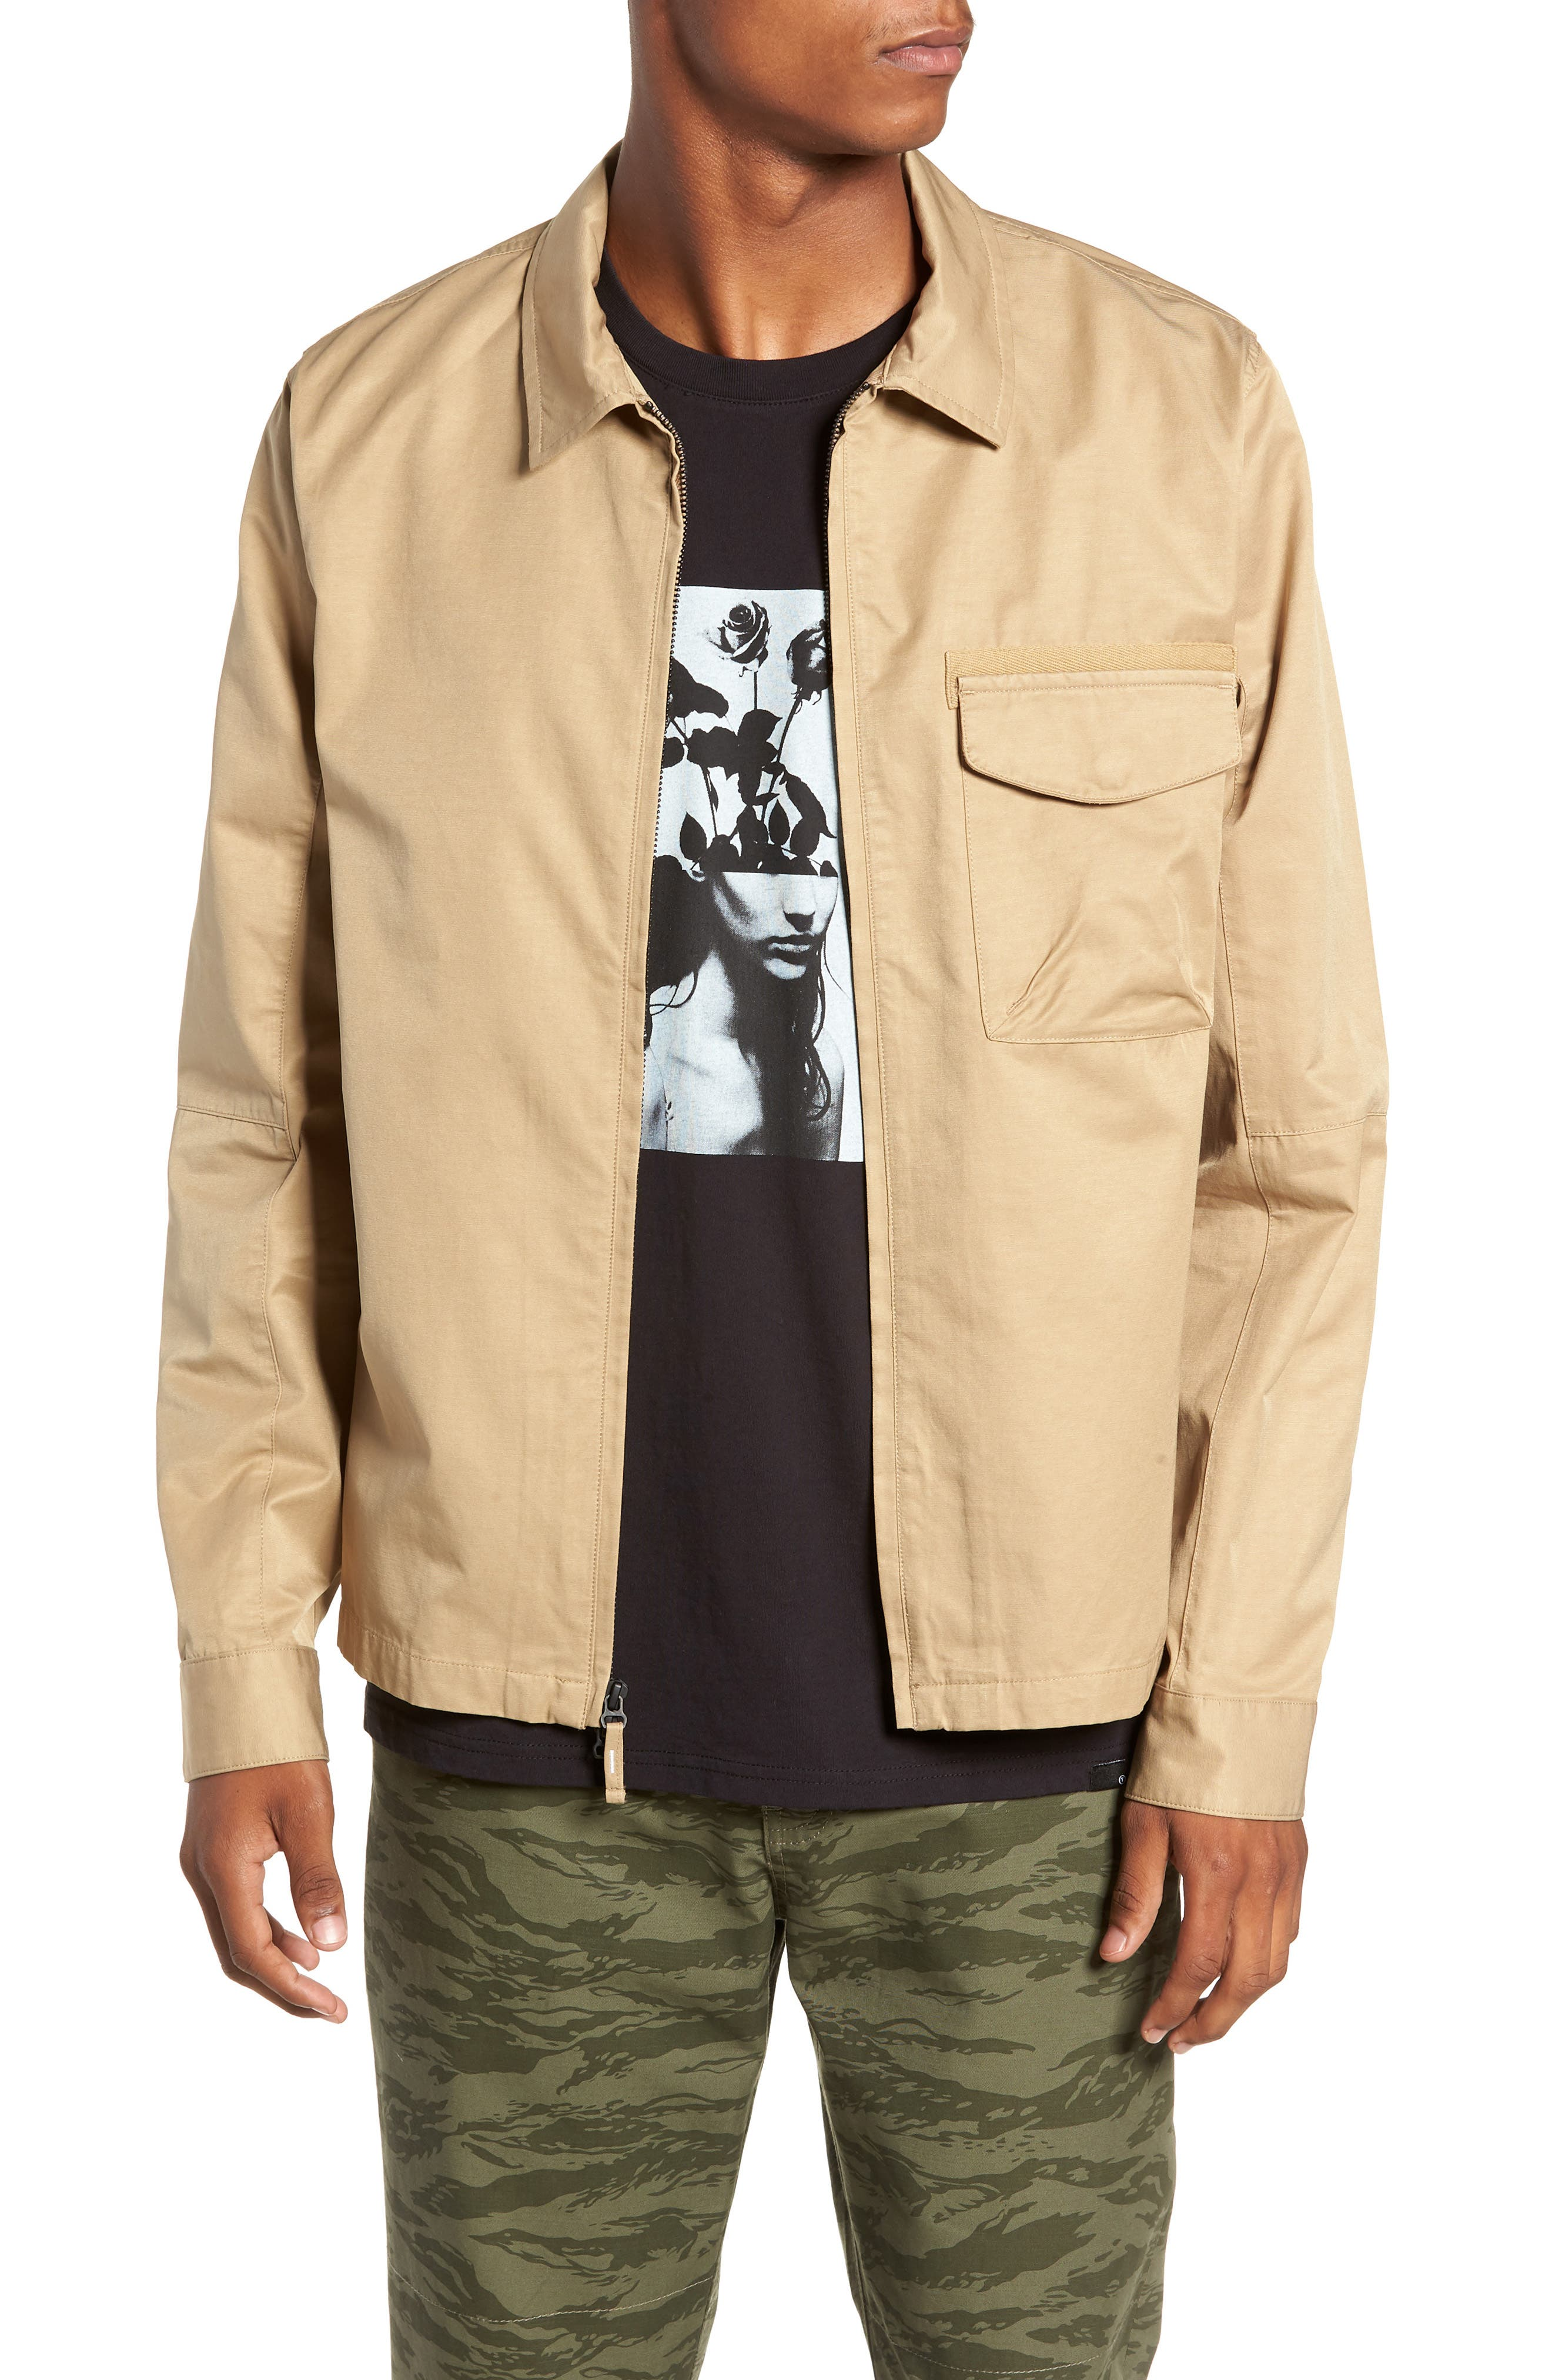 Hale Shirt Jacket,                             Main thumbnail 1, color,                             200